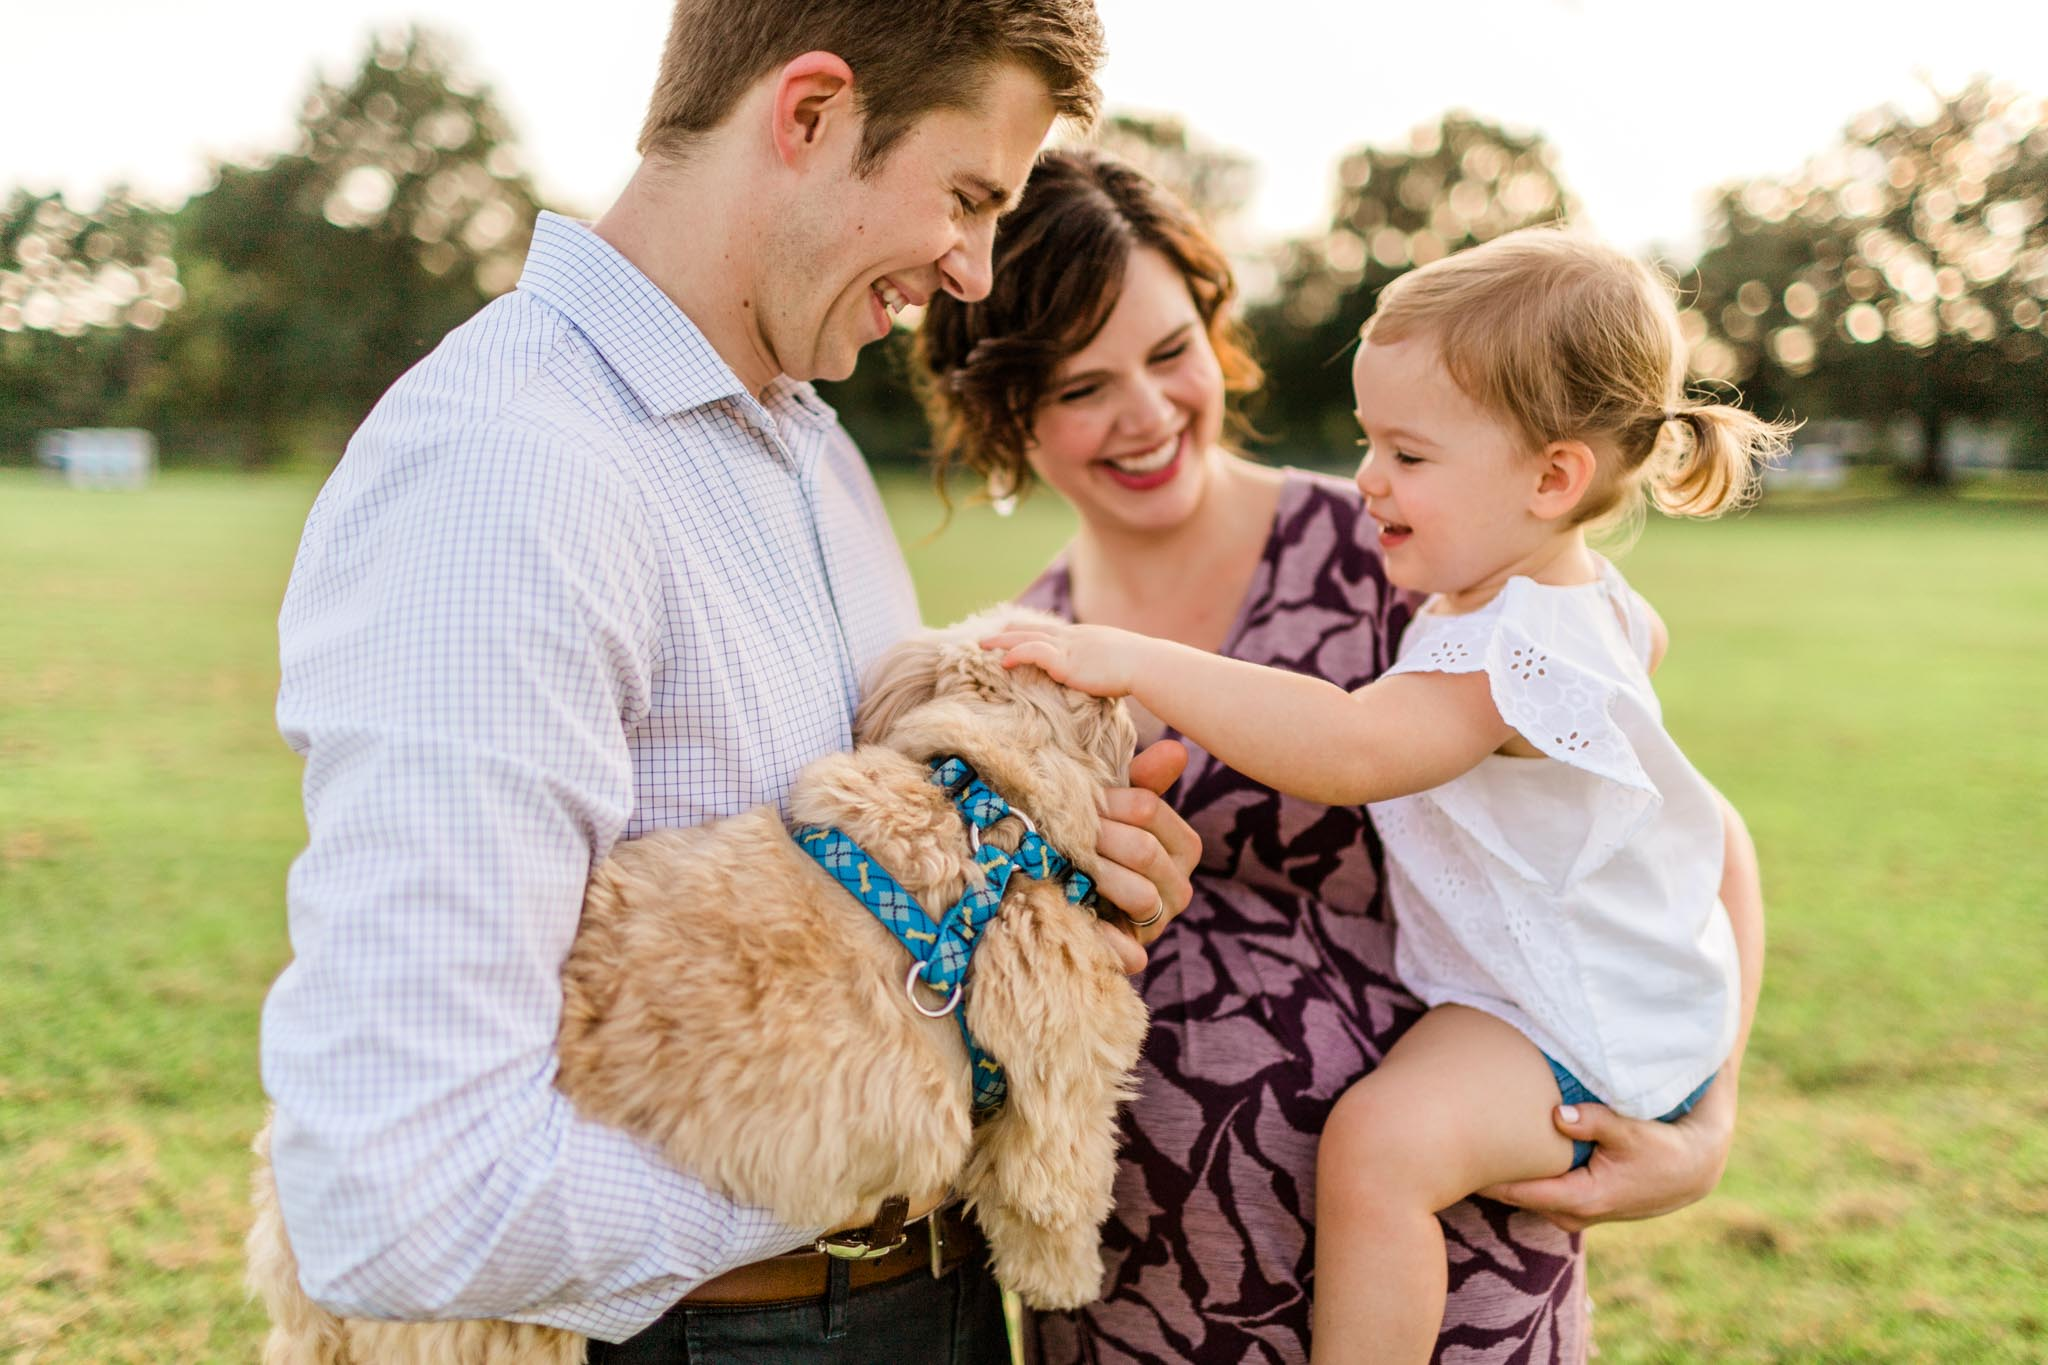 Raleigh Family Photographer at Dix Park | By G. Lin Photography